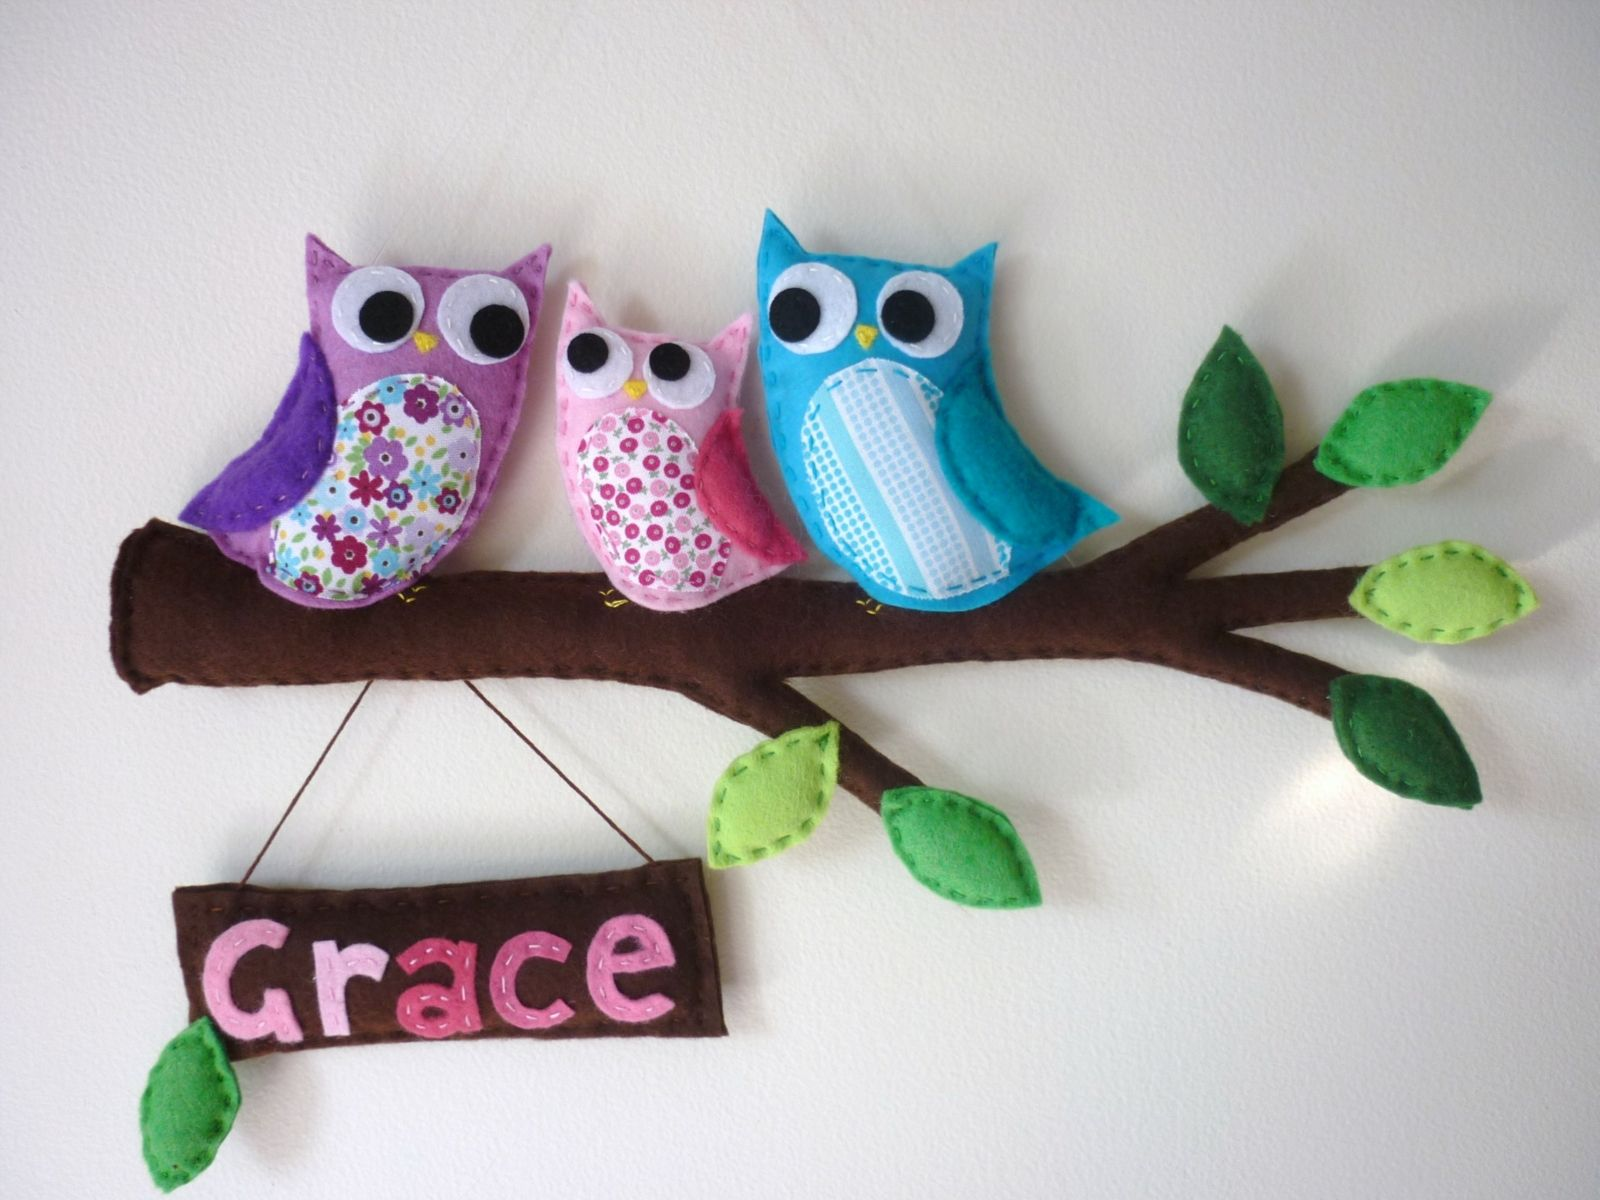 Personalised Owl Family Mum Dad and Baby - Bedroom Door Sign or Wall Hanging  sc 1 st  Pinterest & Personalised Owl Family Mum Dad and Baby - Bedroom Door Sign or ...